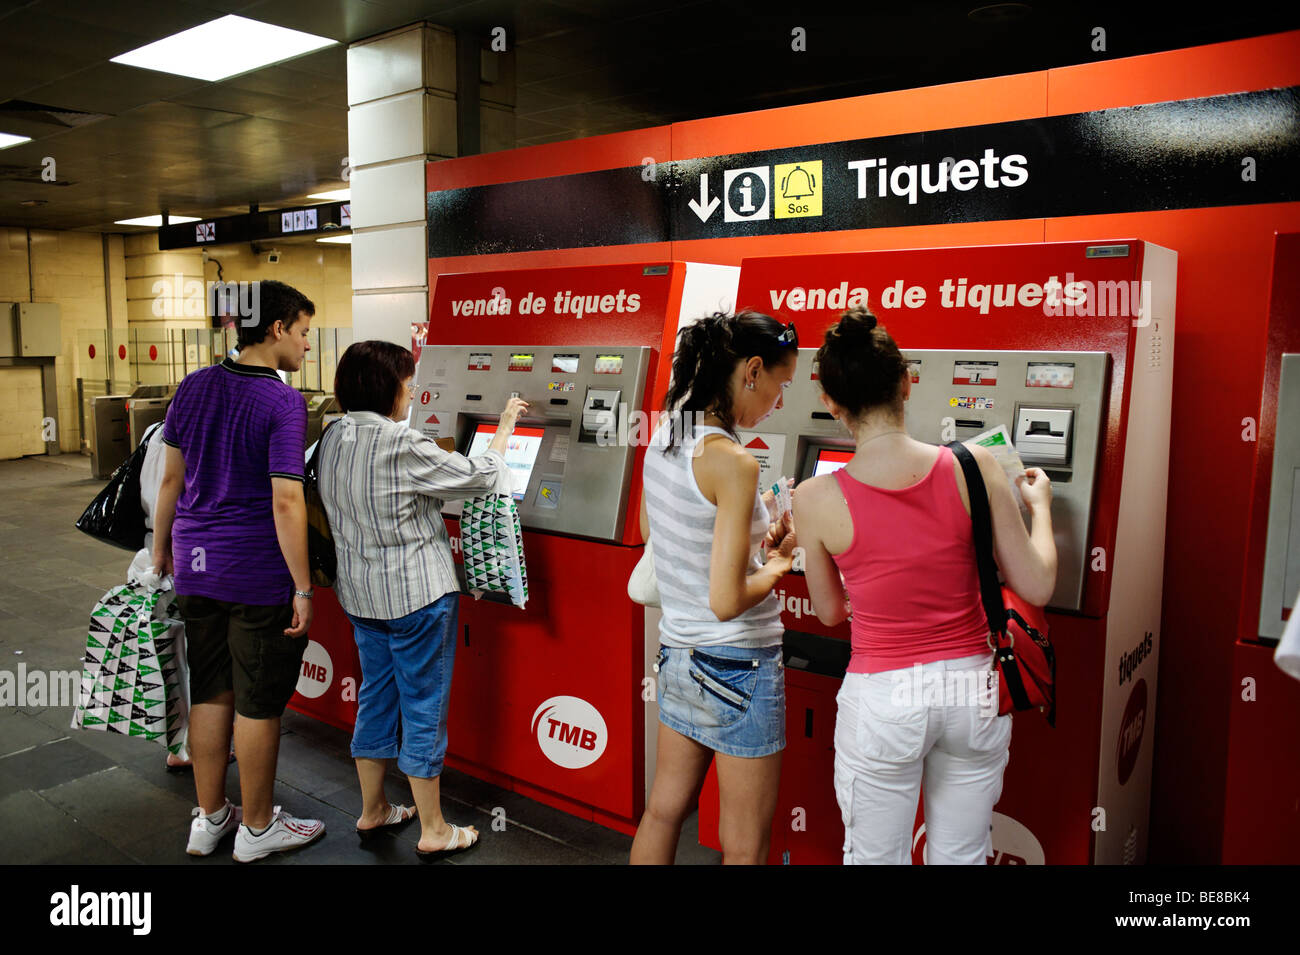 People buying metro tickets at a vending machine. Barcelona. Spain - Stock Image